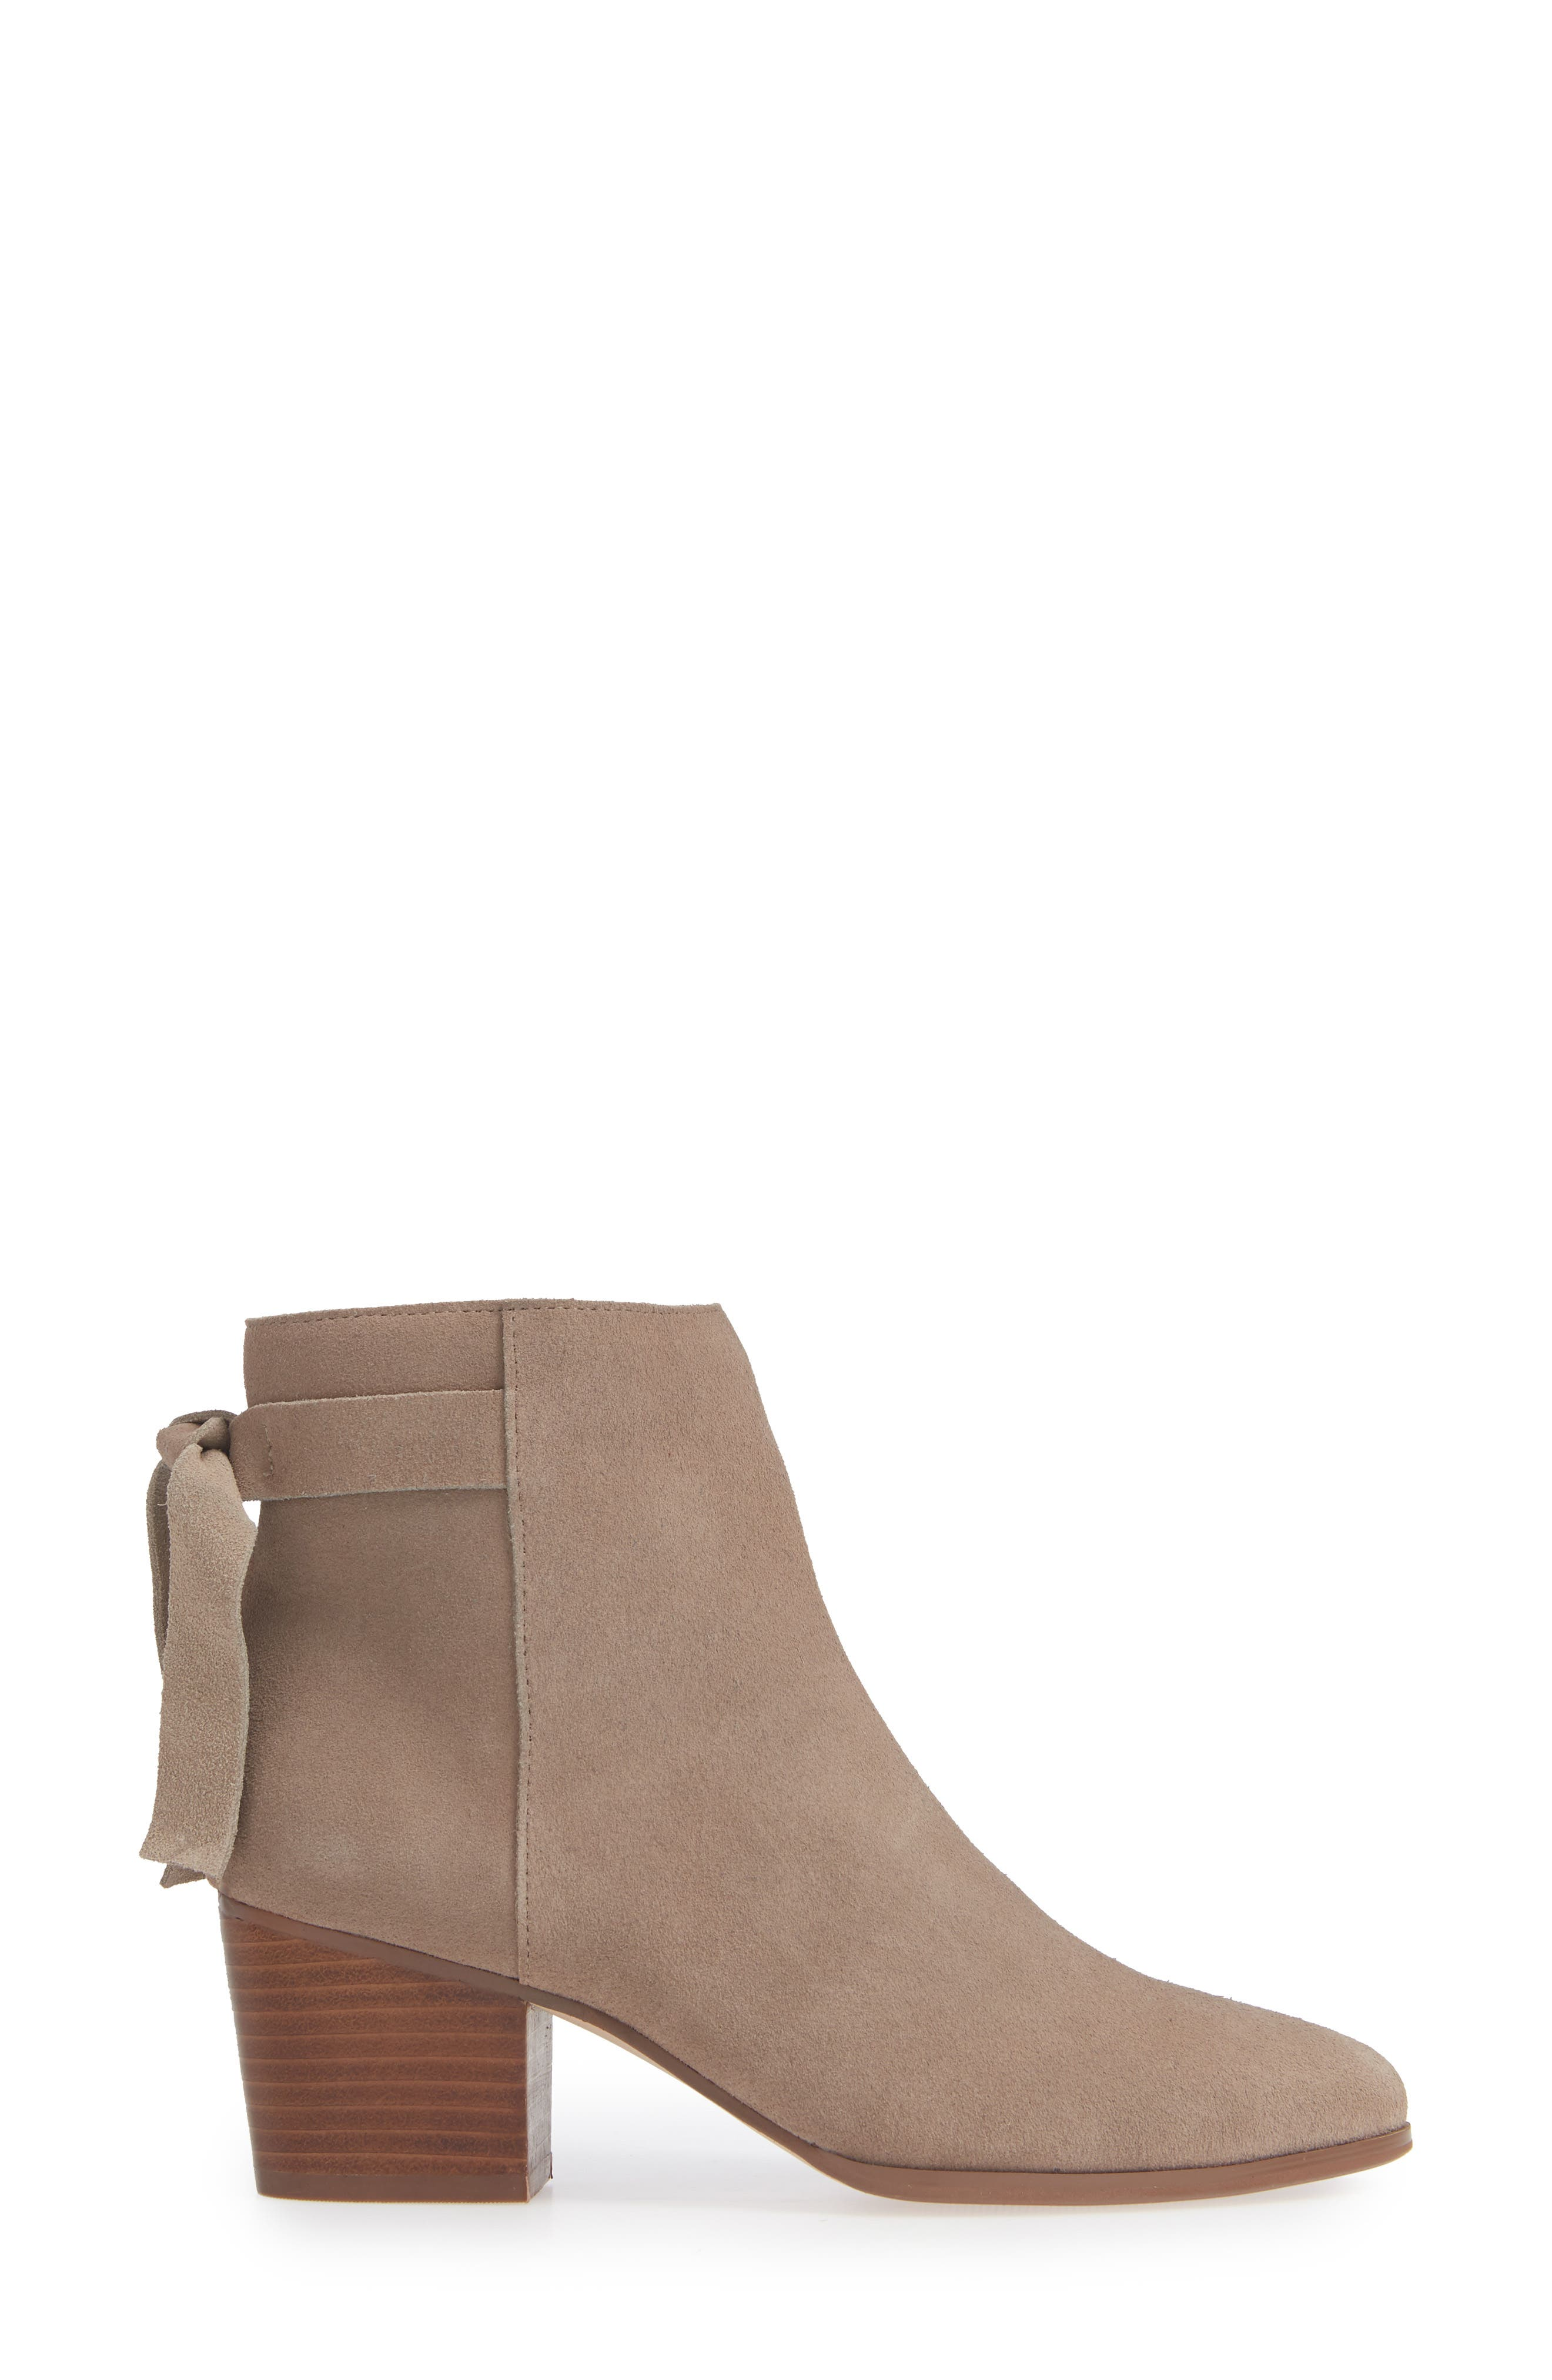 SOLE SOCIETY, Rhilynn Bootie, Alternate thumbnail 3, color, FALL TAUPE SUEDE